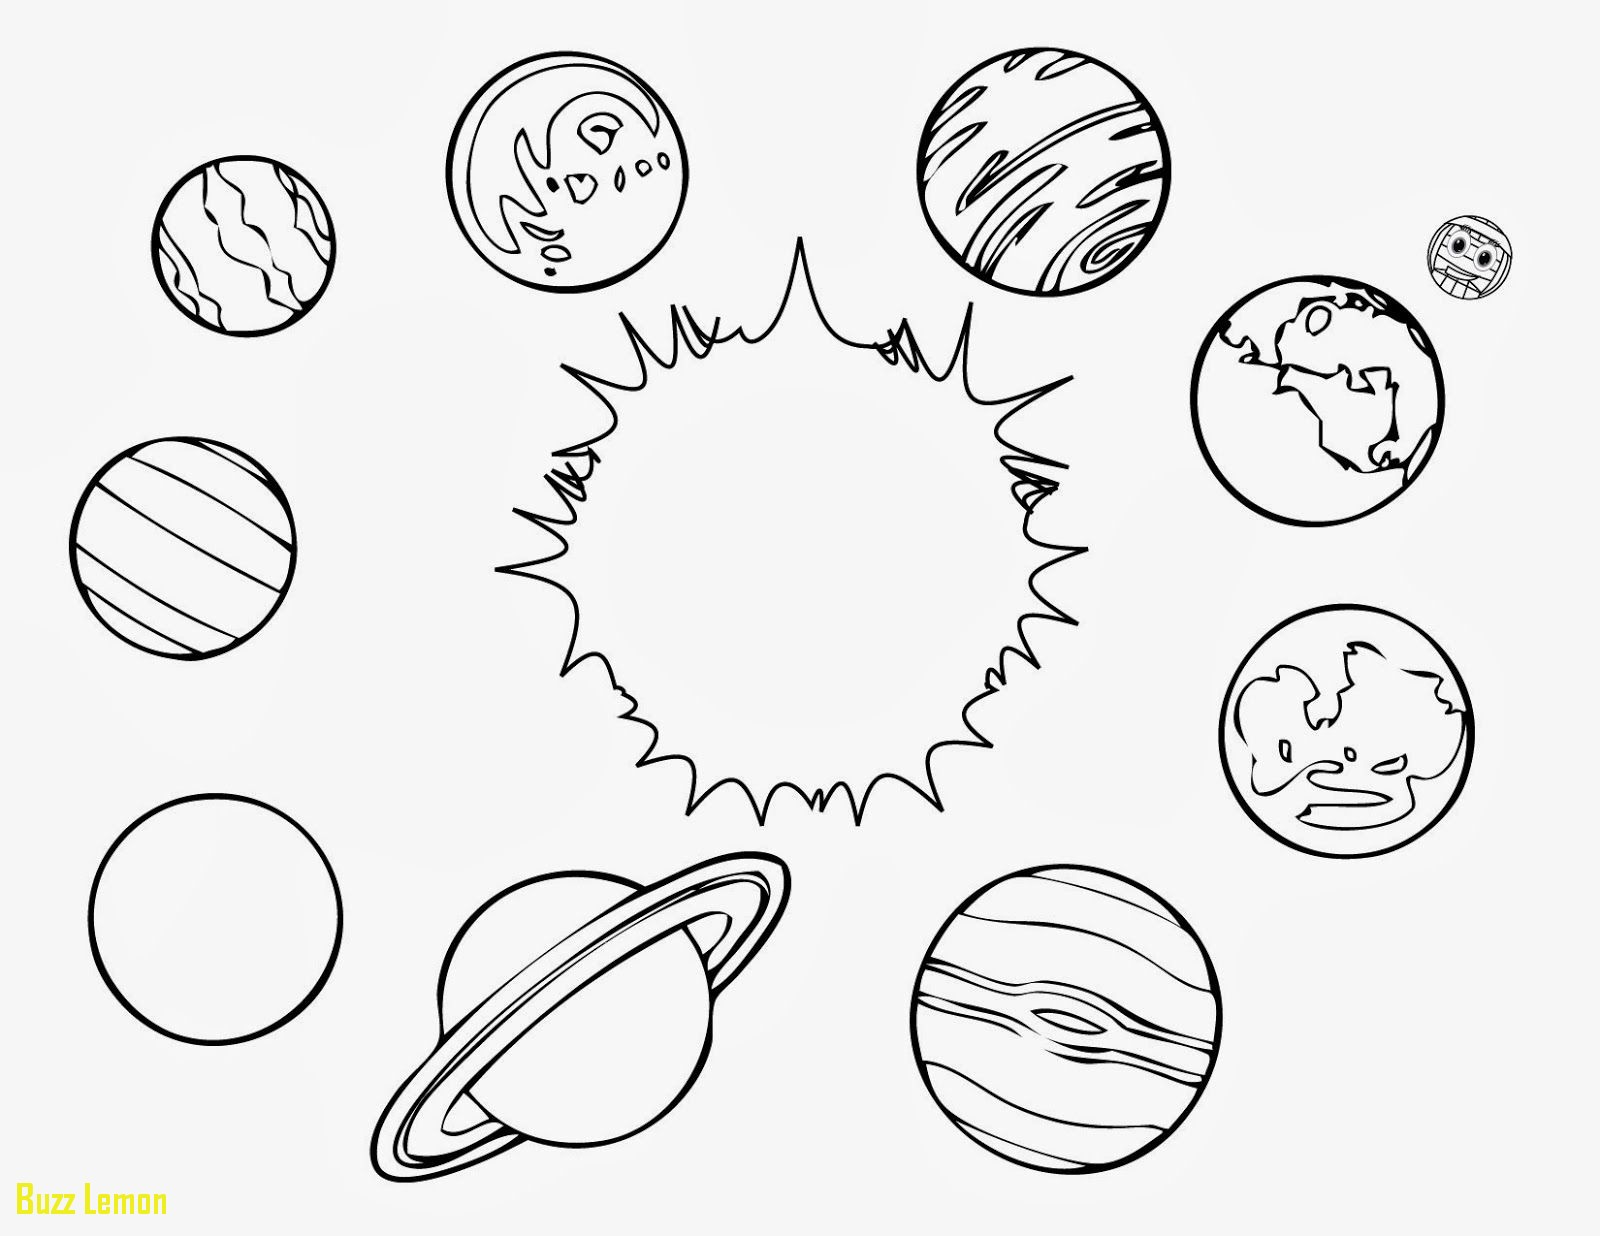 planet coloring pages with the 9 planets the planets in solar system coloring pages page 4 pics pages planet the coloring planets with 9